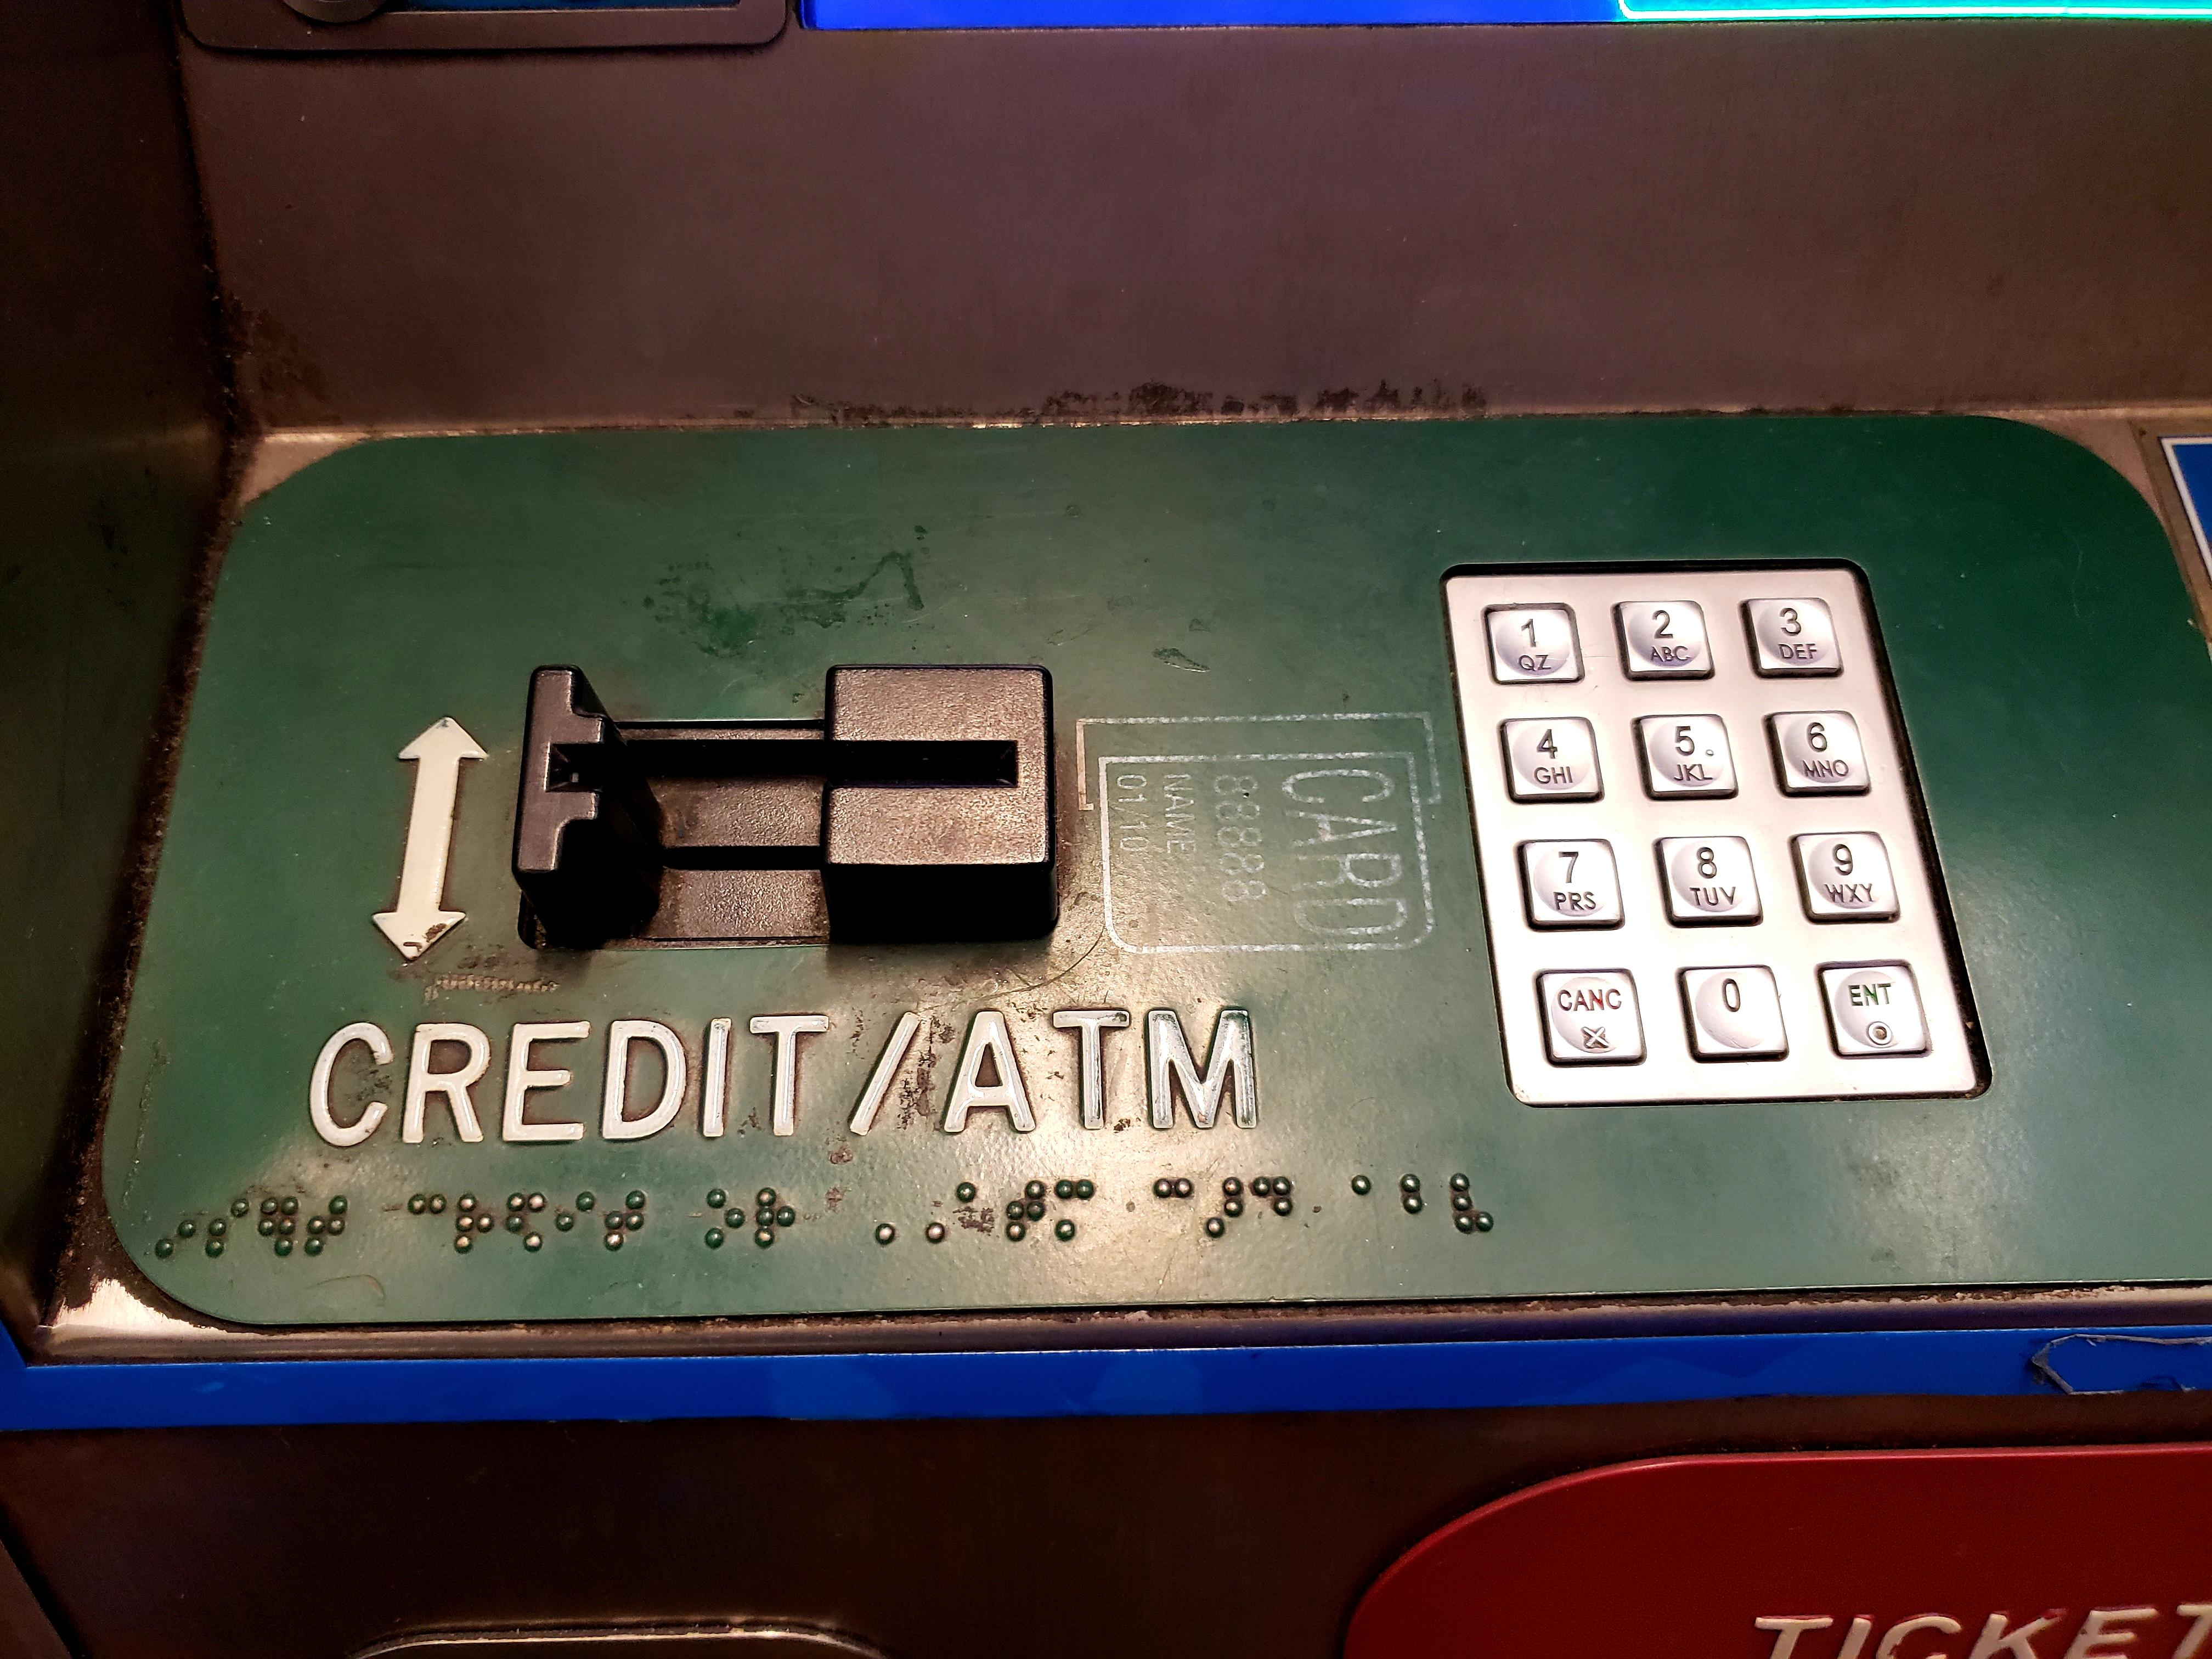 bart-no-mobile-payment-credit-card